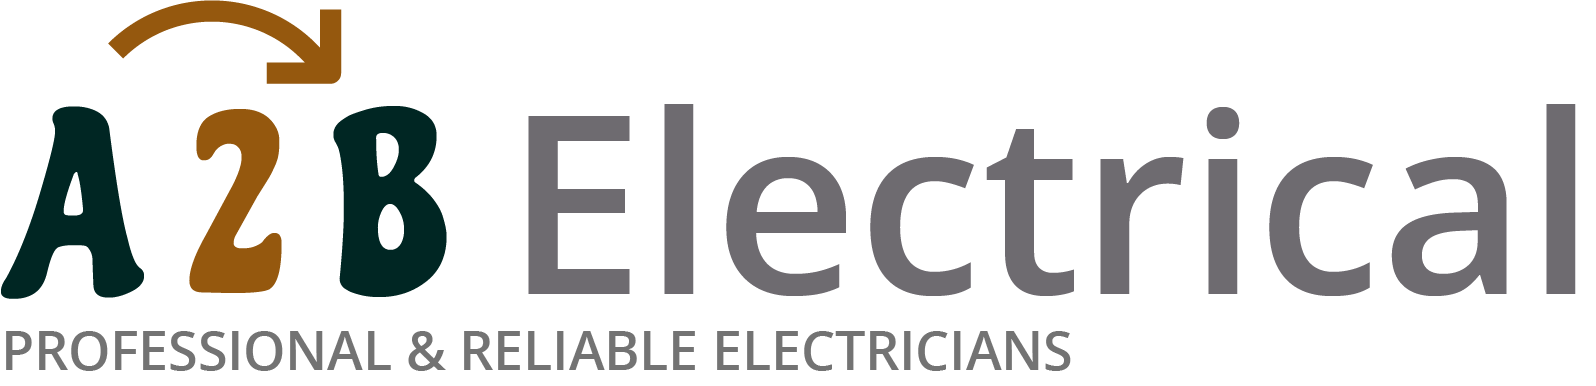 If you have electrical wiring problems in Putney, we can provide an electrician to have a look for you.